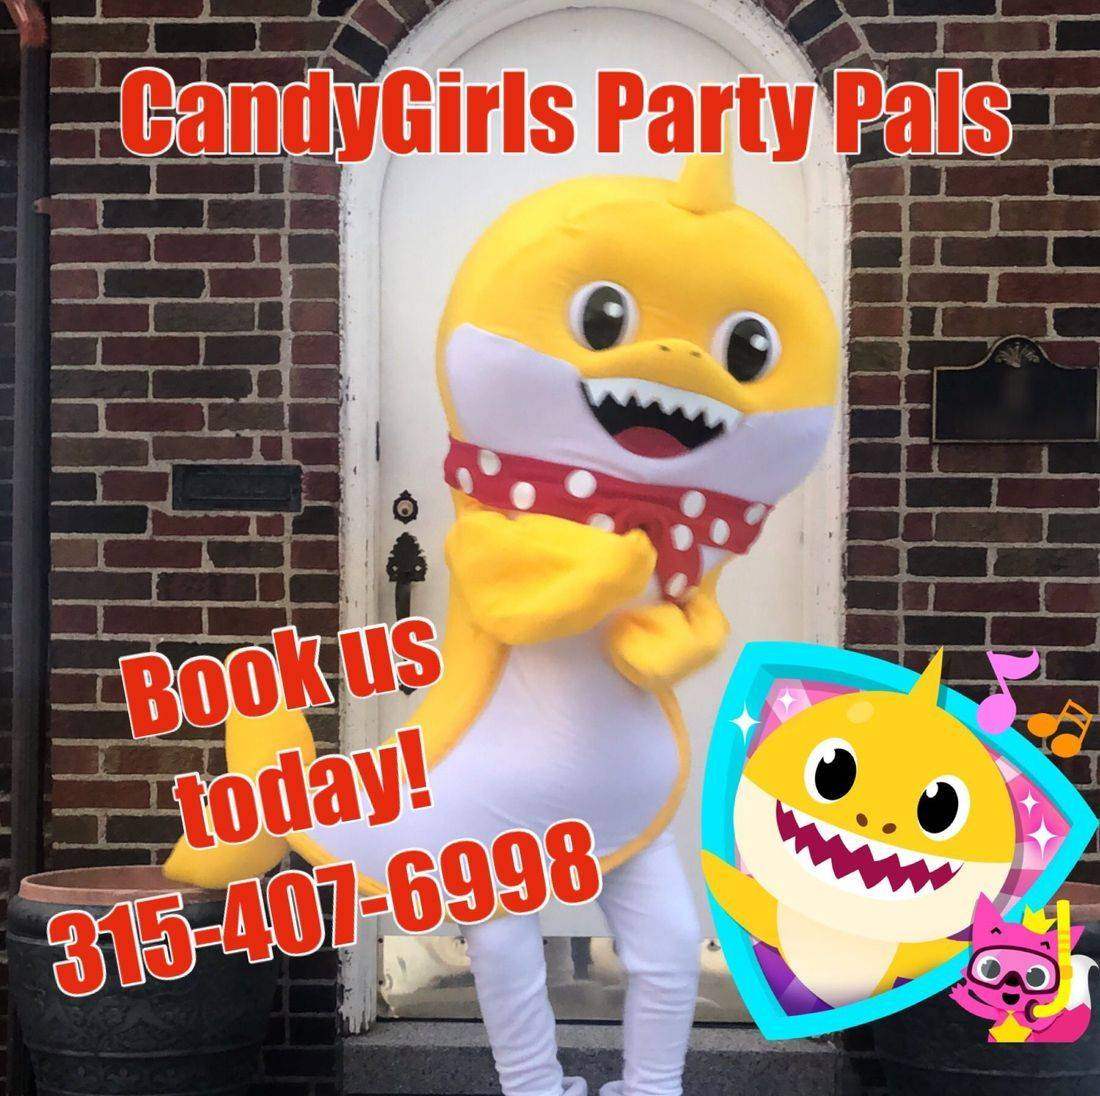 Candygirls Party Pals By Audrey Mascot Rental